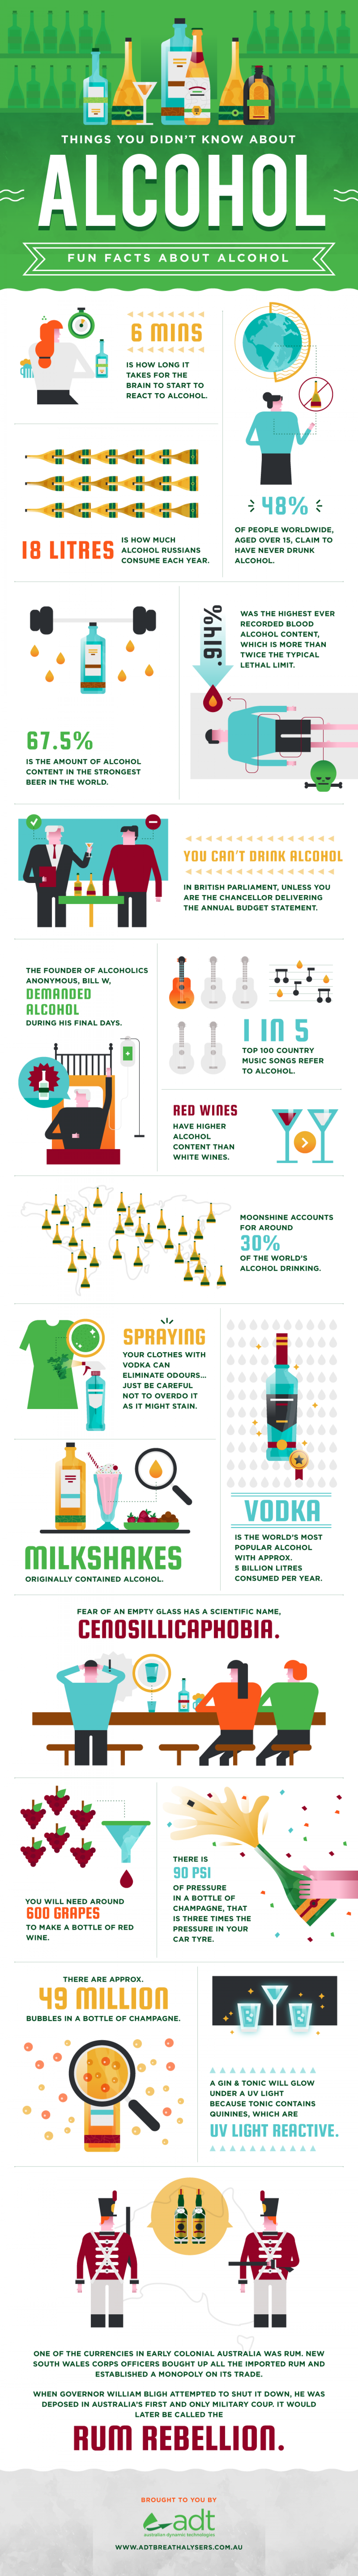 Things You Didn't Know About Alcohol Infographic